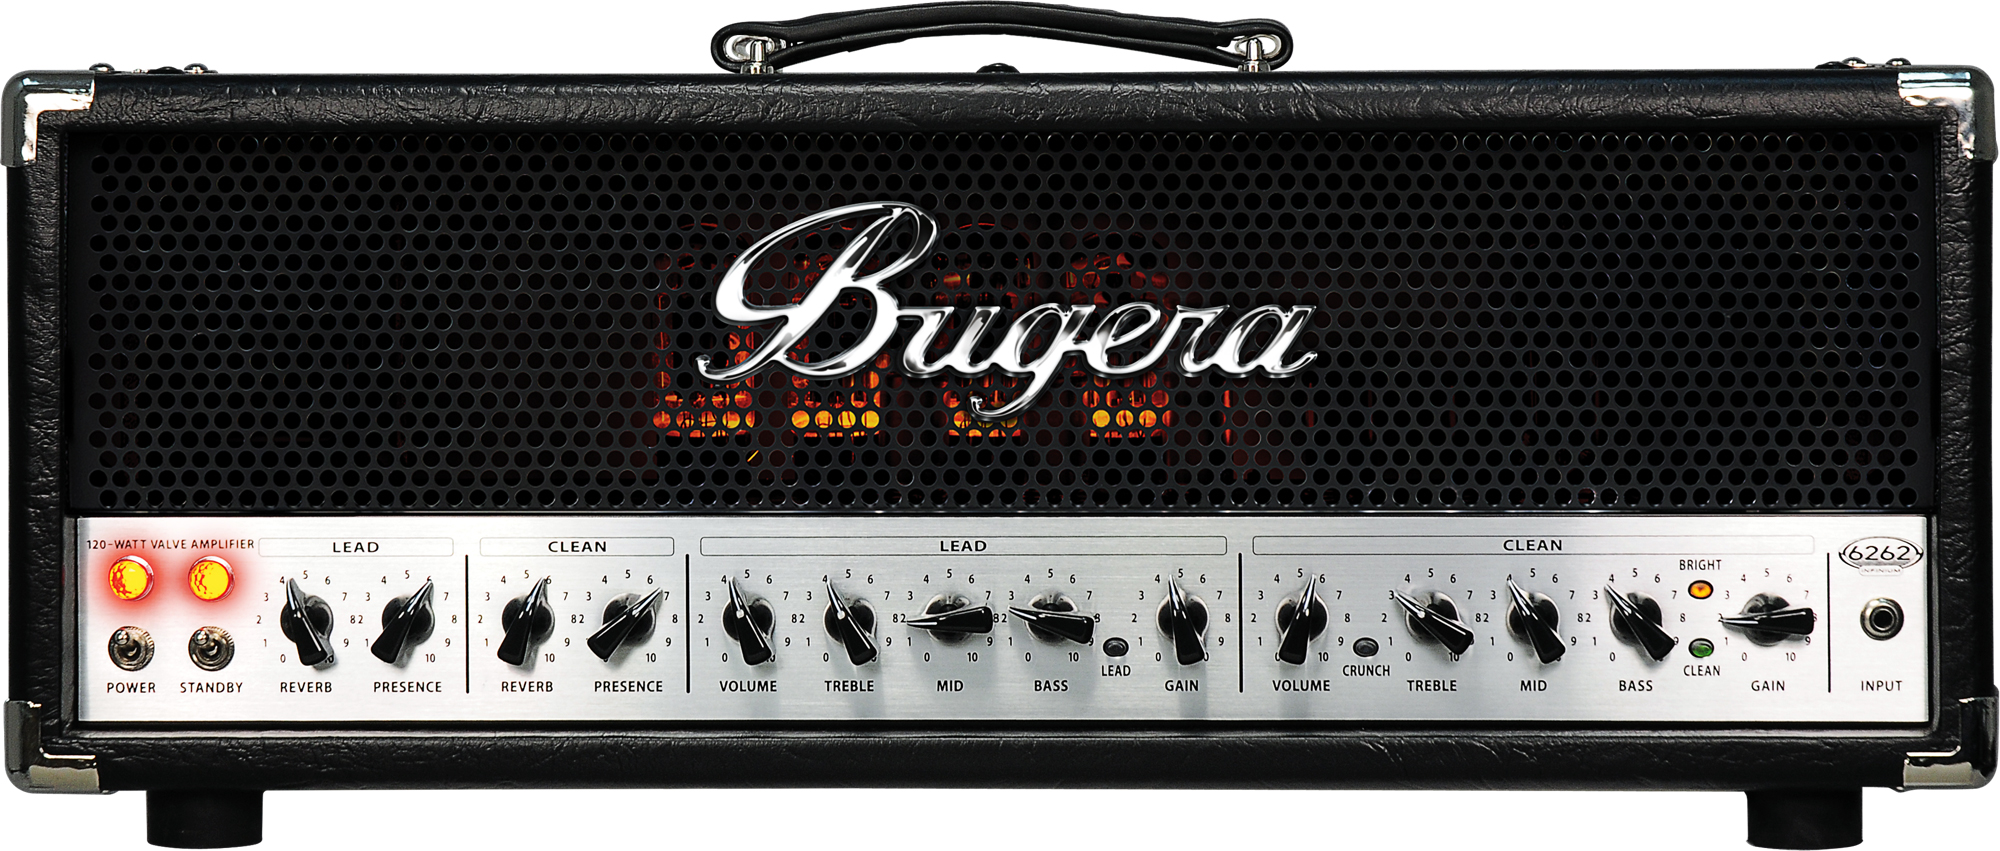 bugera 6262 infinium ultimate rock tone 120 watt 2 channel valve guitar amplifier head with. Black Bedroom Furniture Sets. Home Design Ideas